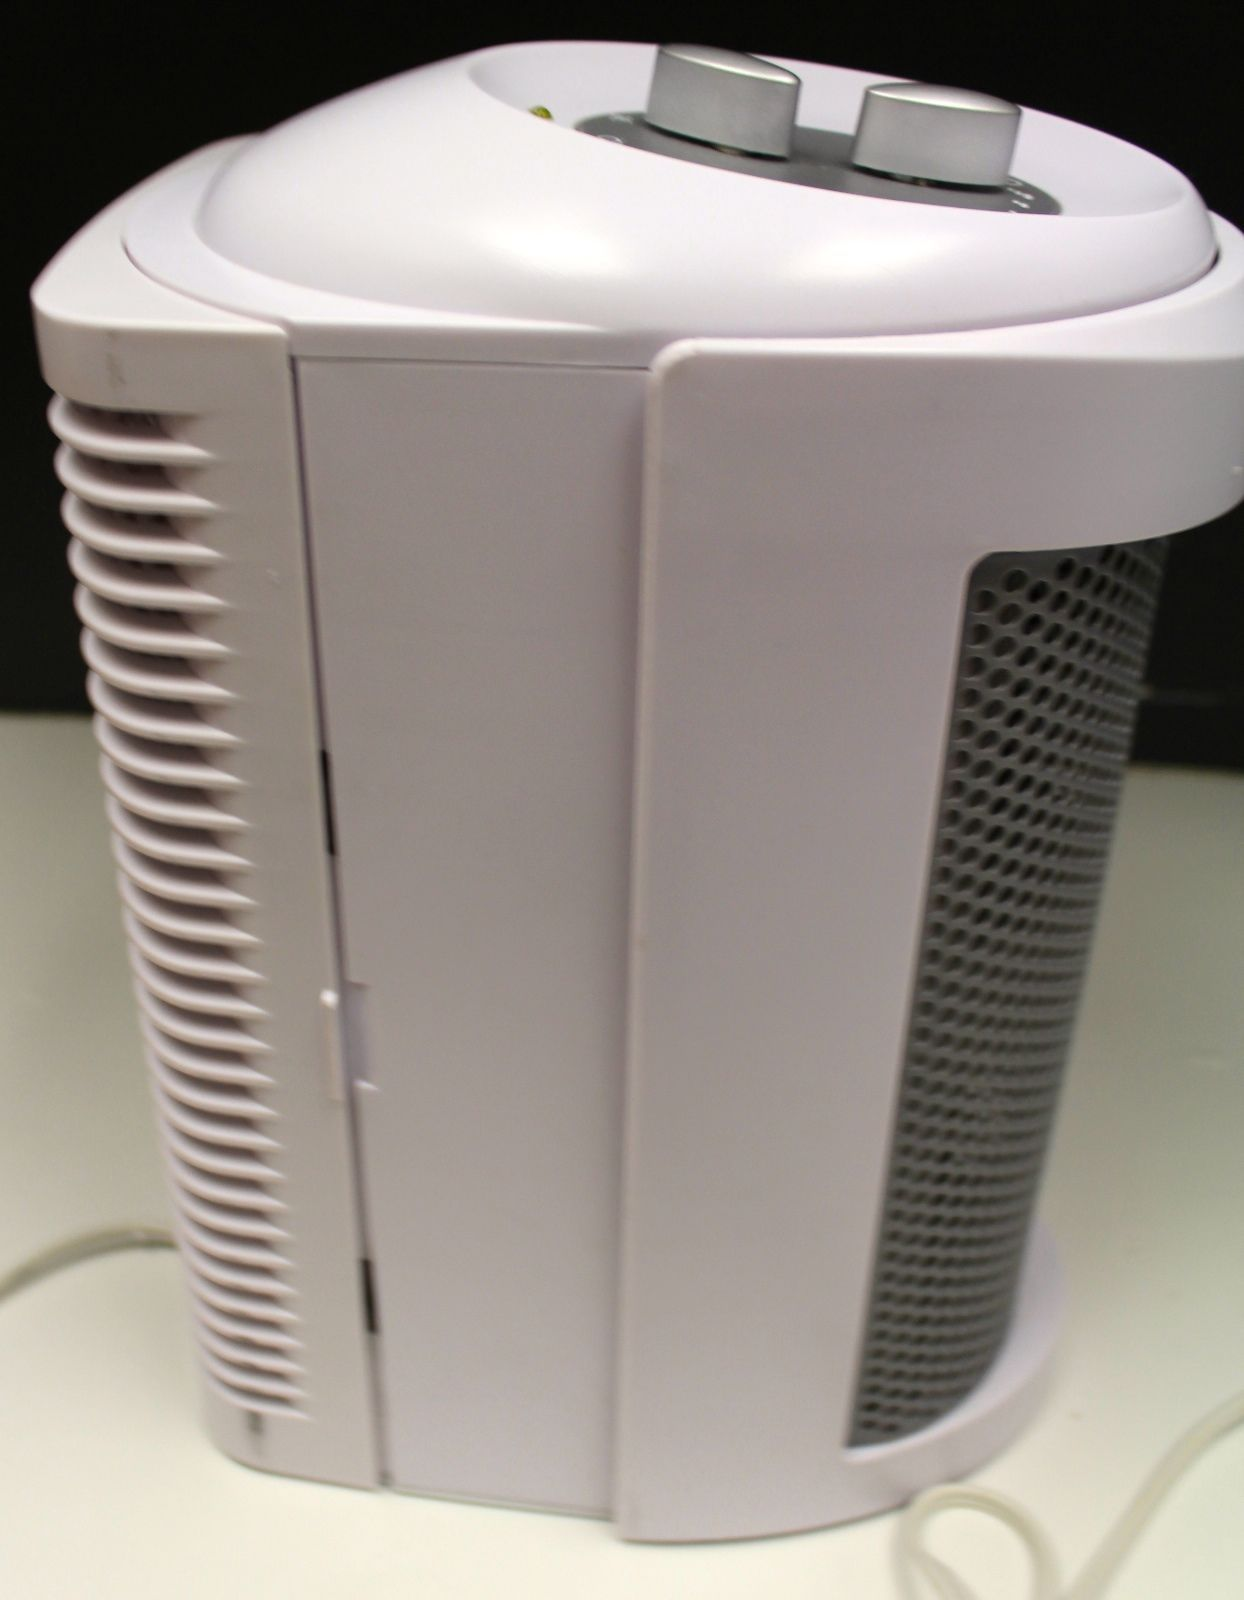 Small Air Cleaners : Holmes true hepa mini tower allergen remover air purifier